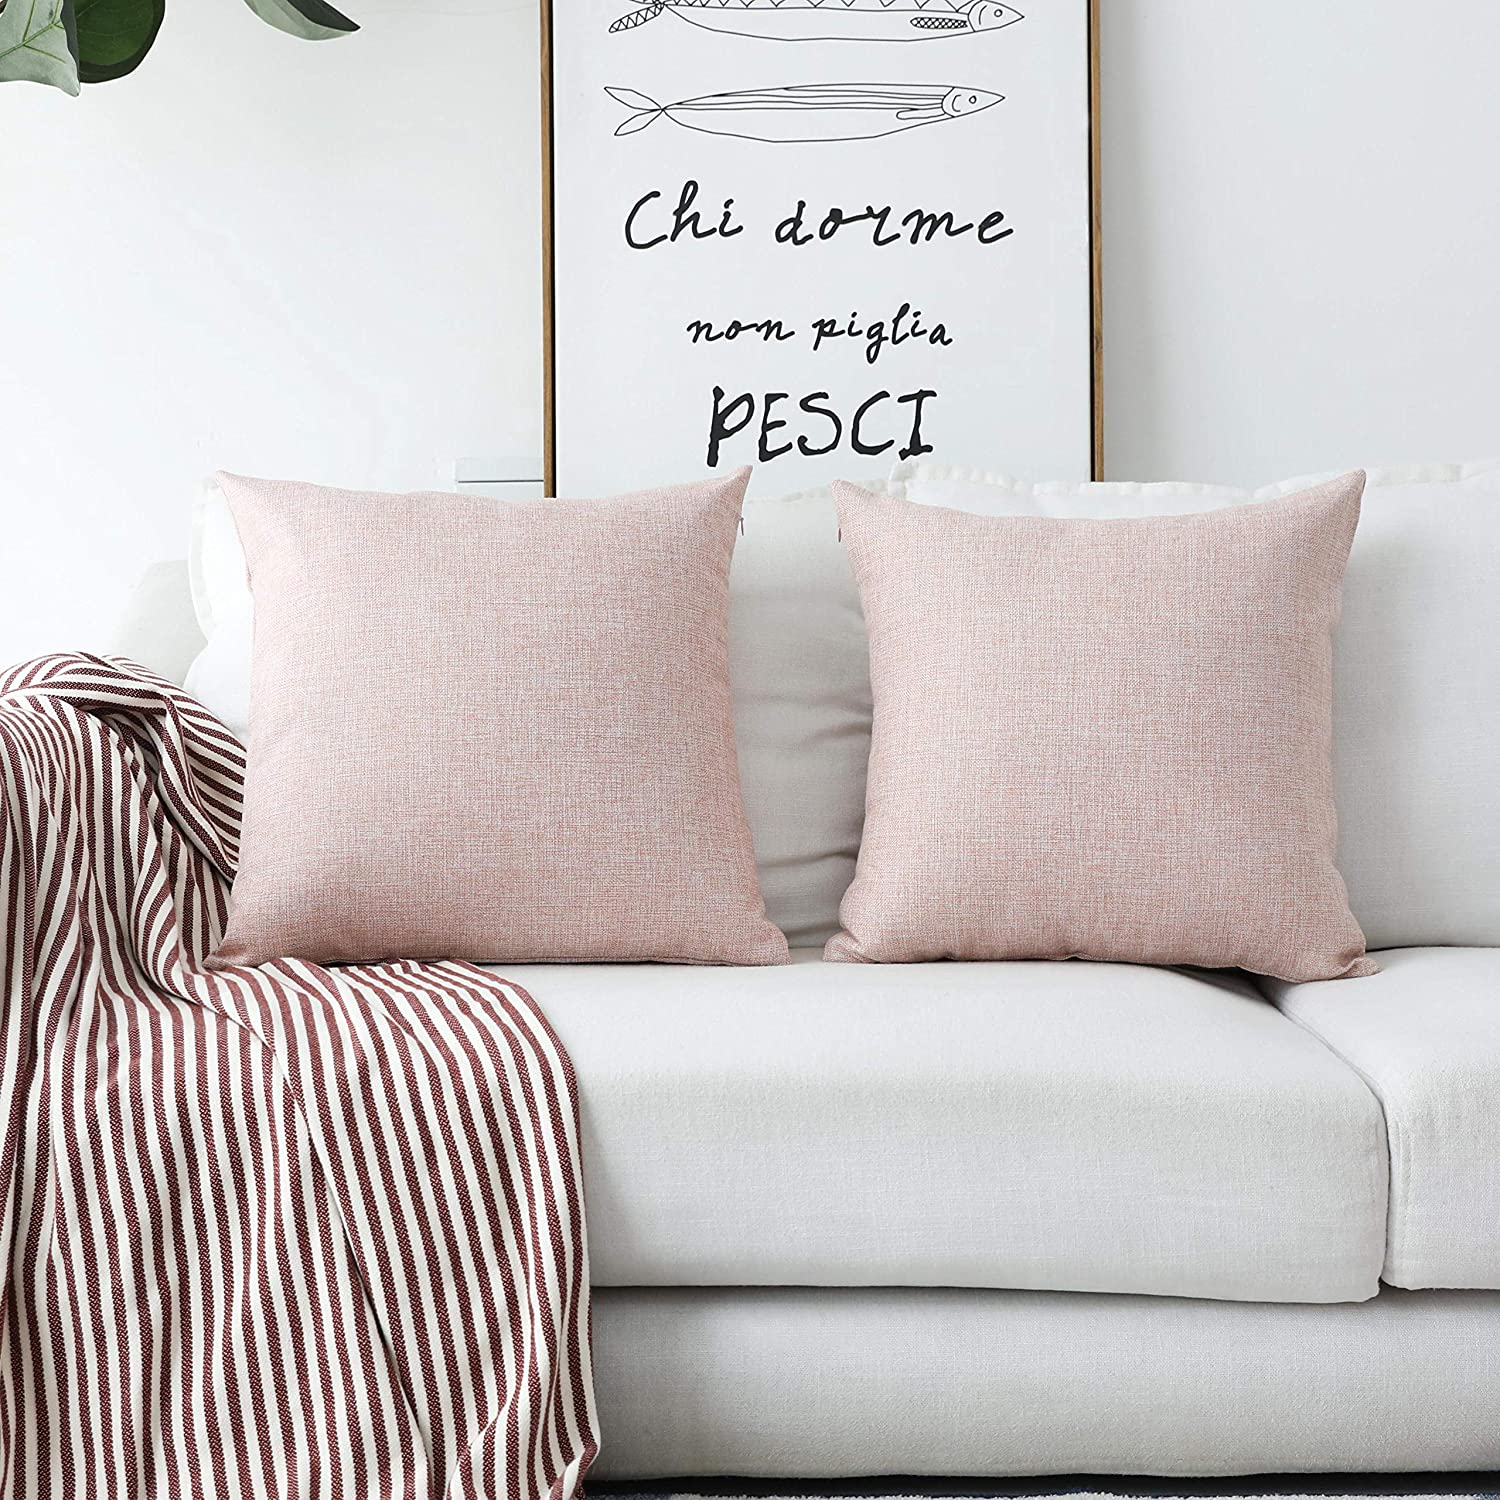 home decor ideas - throw pillows